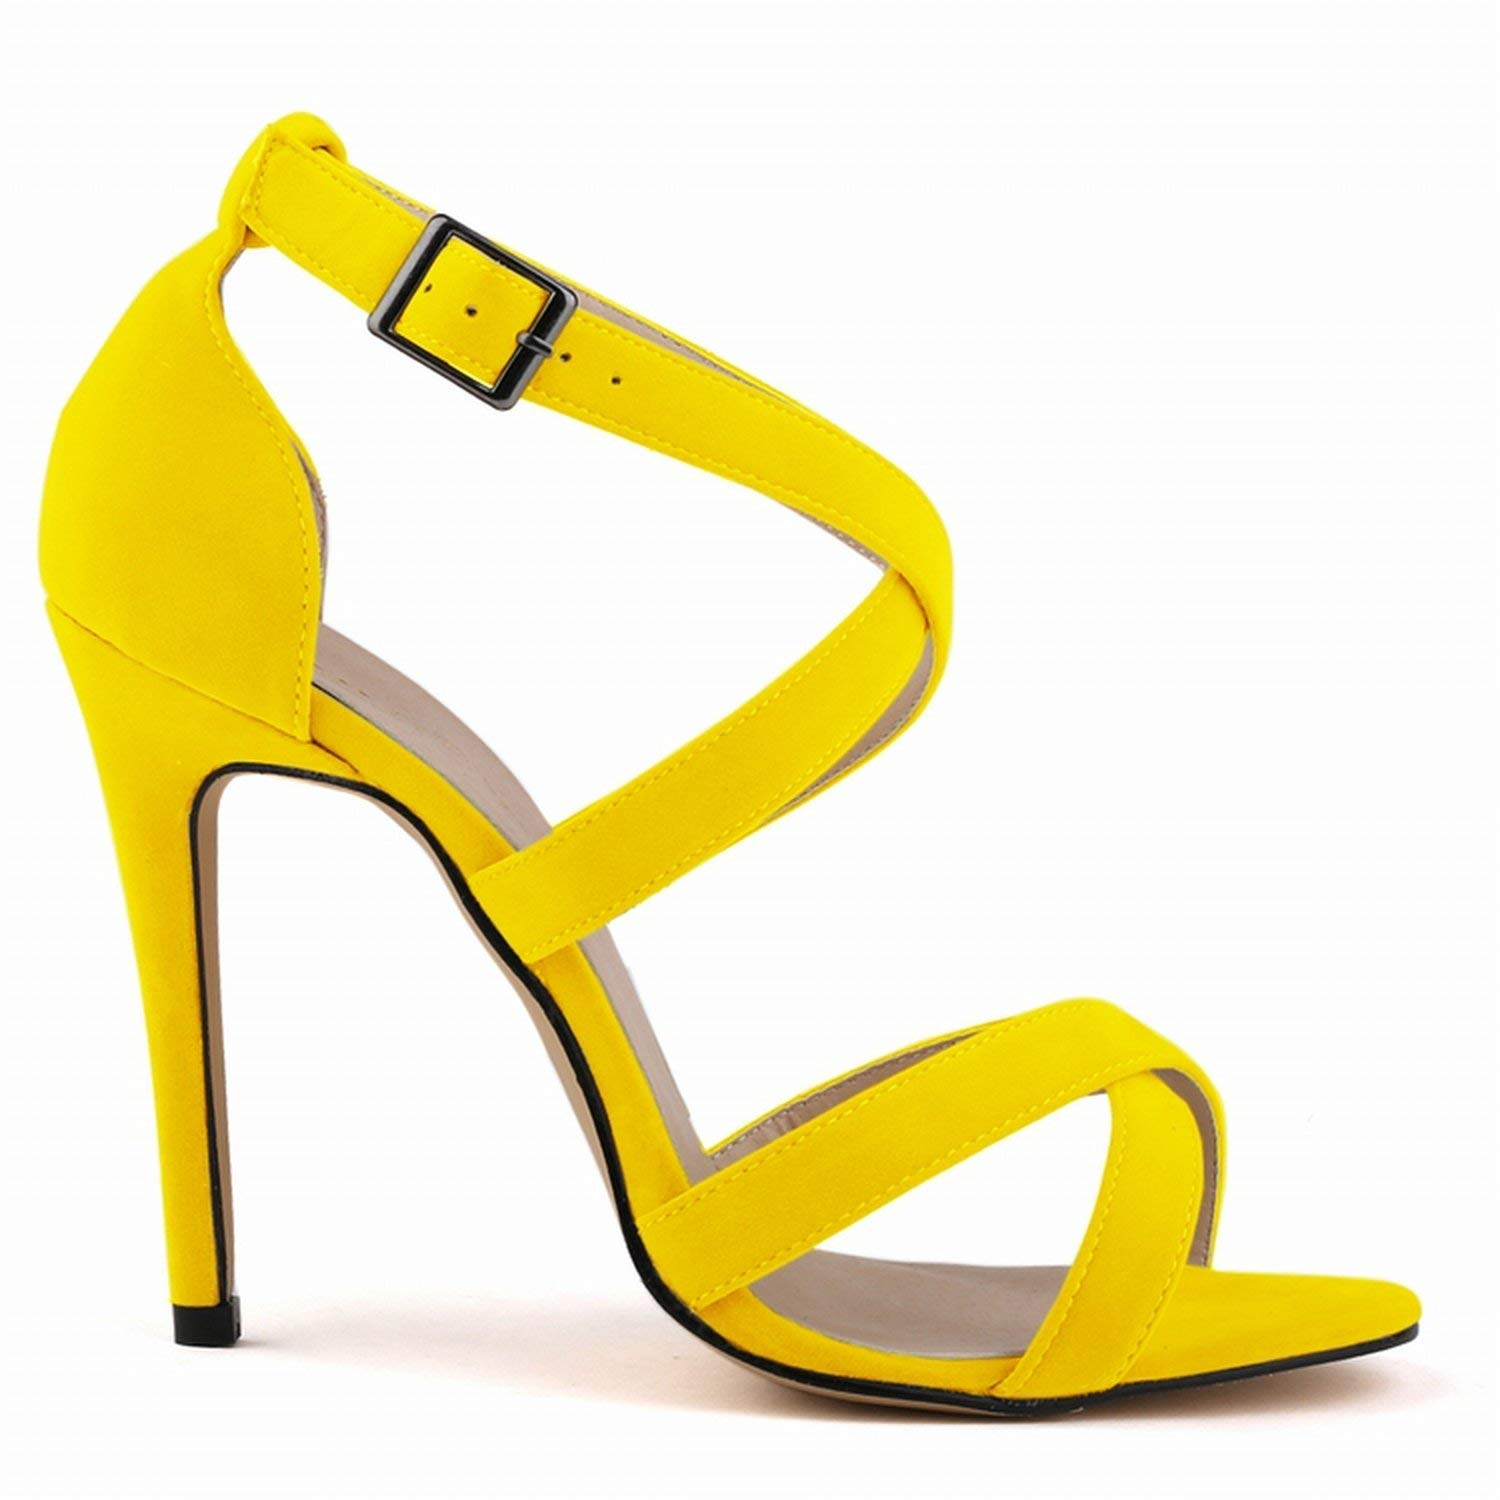 YELLOW coolemon New Summer Women high Heels Sandals shoes Woman Fashion Sexy Cross-Tied peep Toe Party Wedding Stiletto Buckle shoes